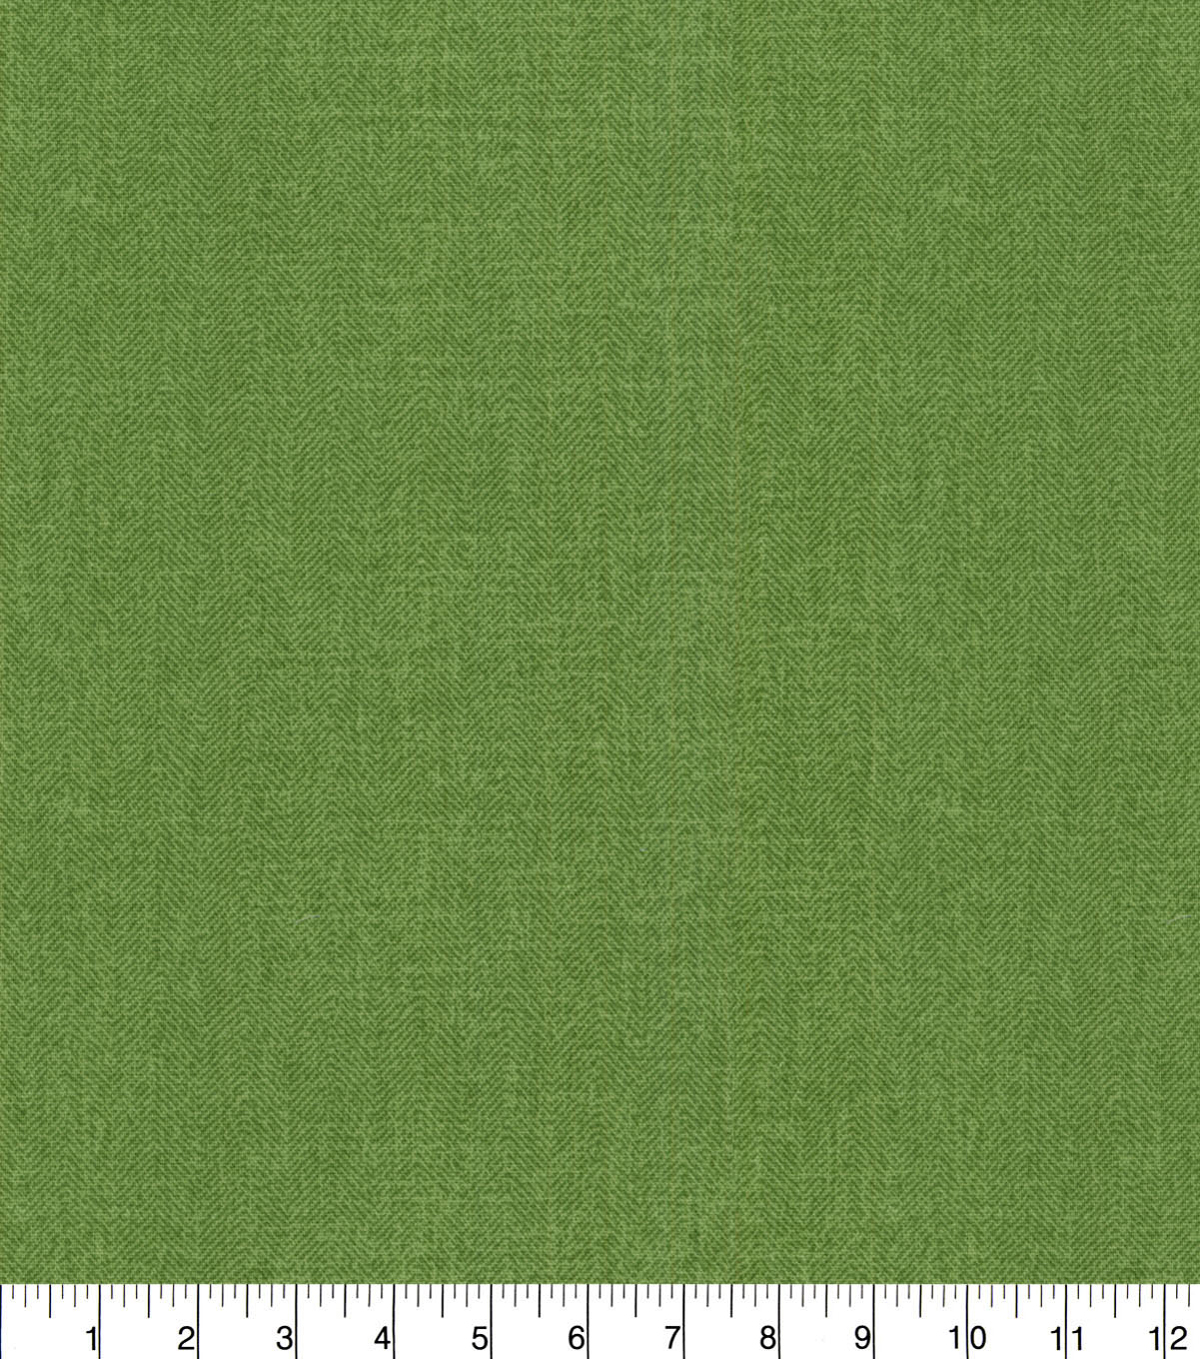 Waverly Upholstery Décor Fabric 9\u0022x9\u0022 Swatch-Herringbone Solid Verte